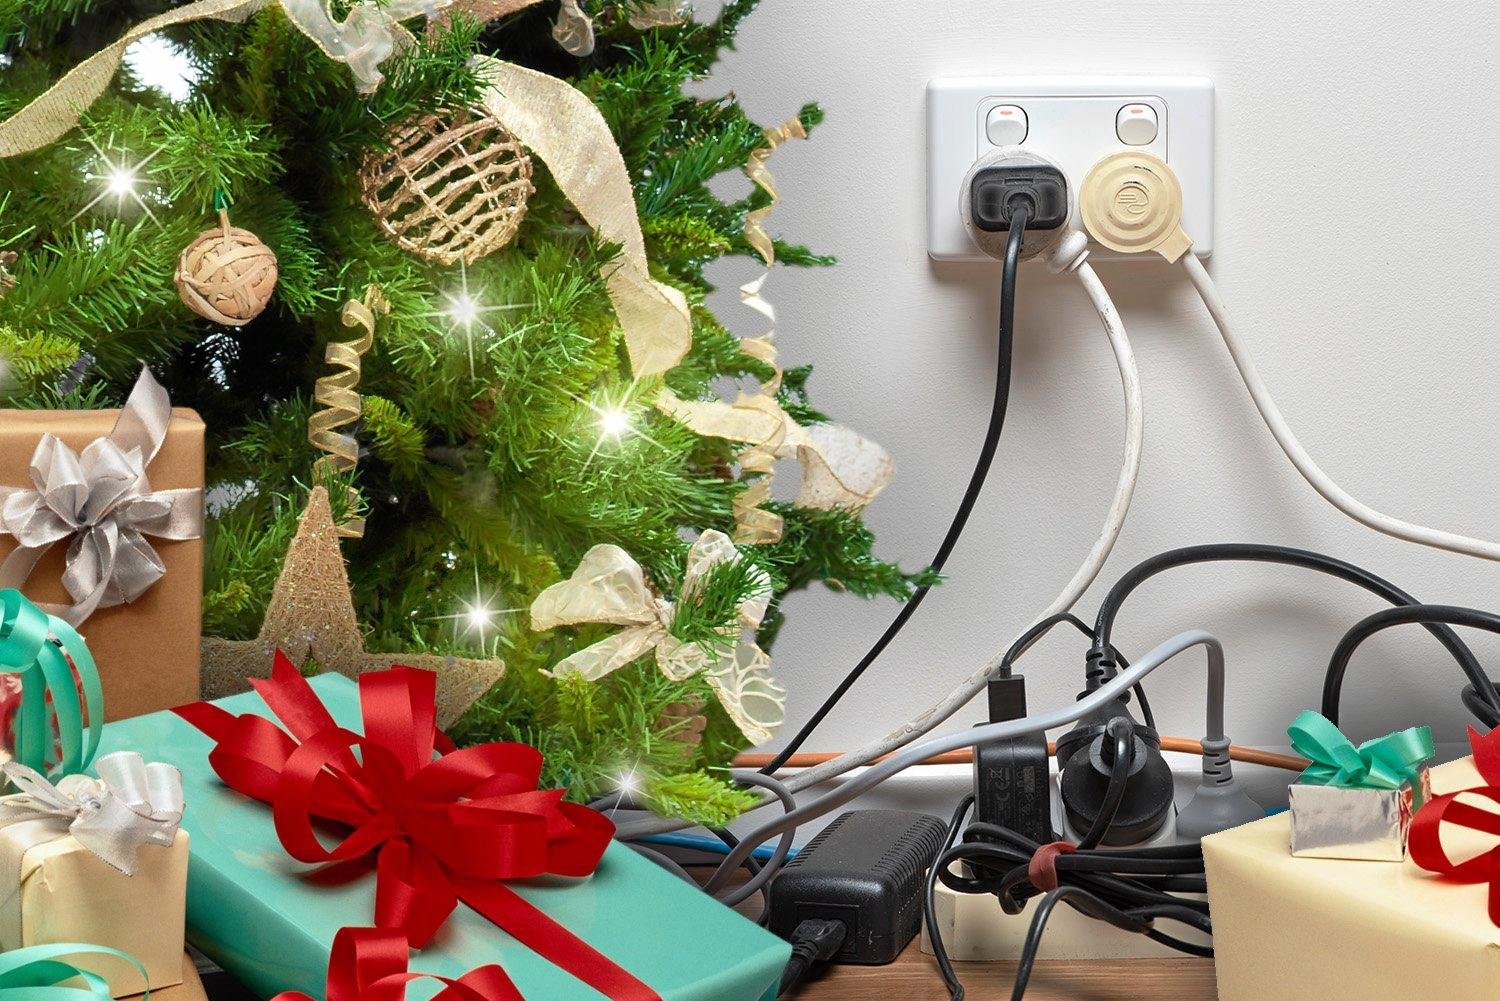 A set of dodgy online Christmas lights have turned into a high-voltage